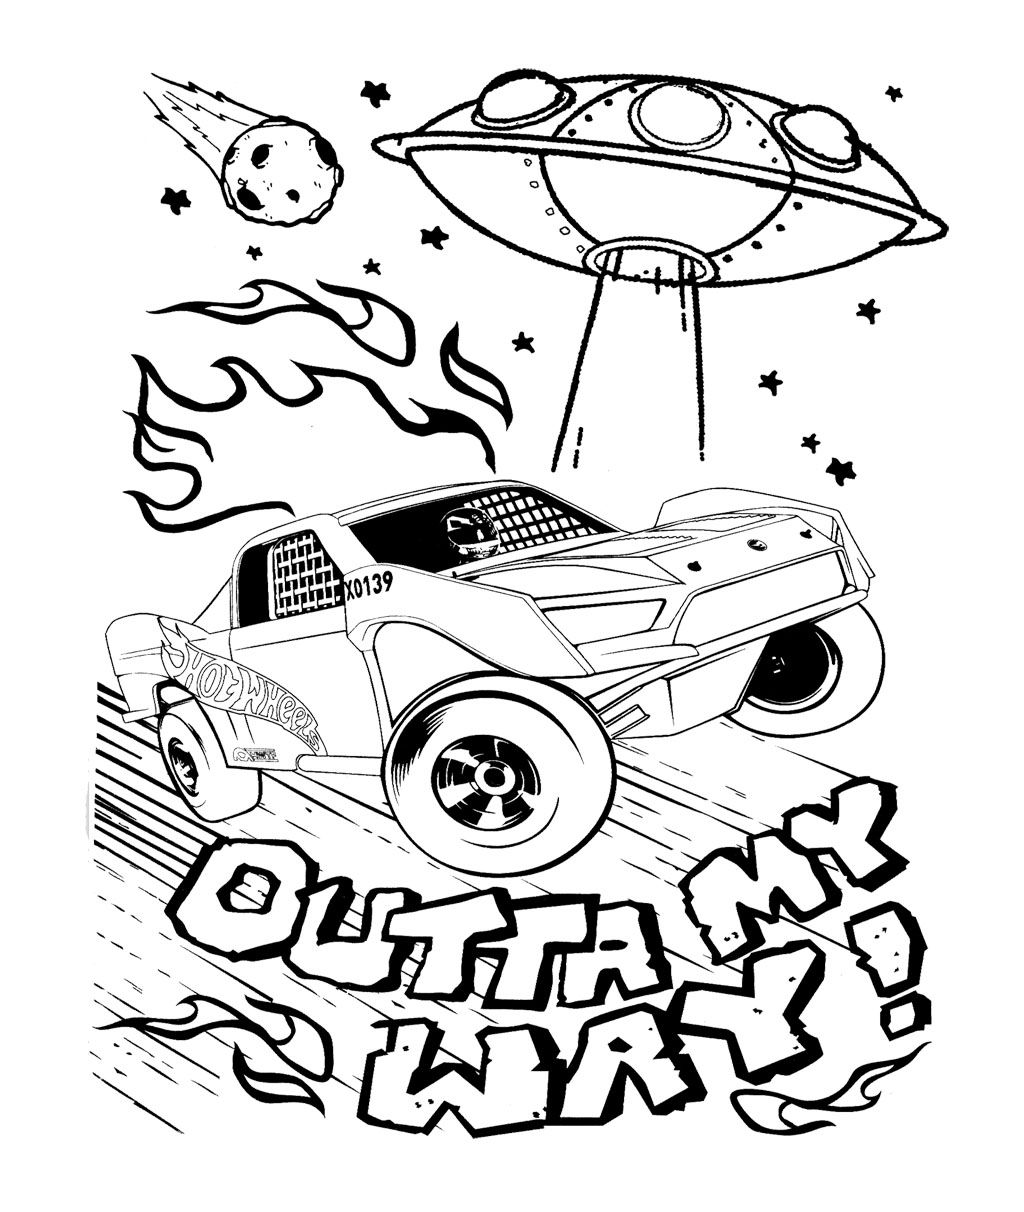 car wheels and alien spacecraft coloring page for kids kids